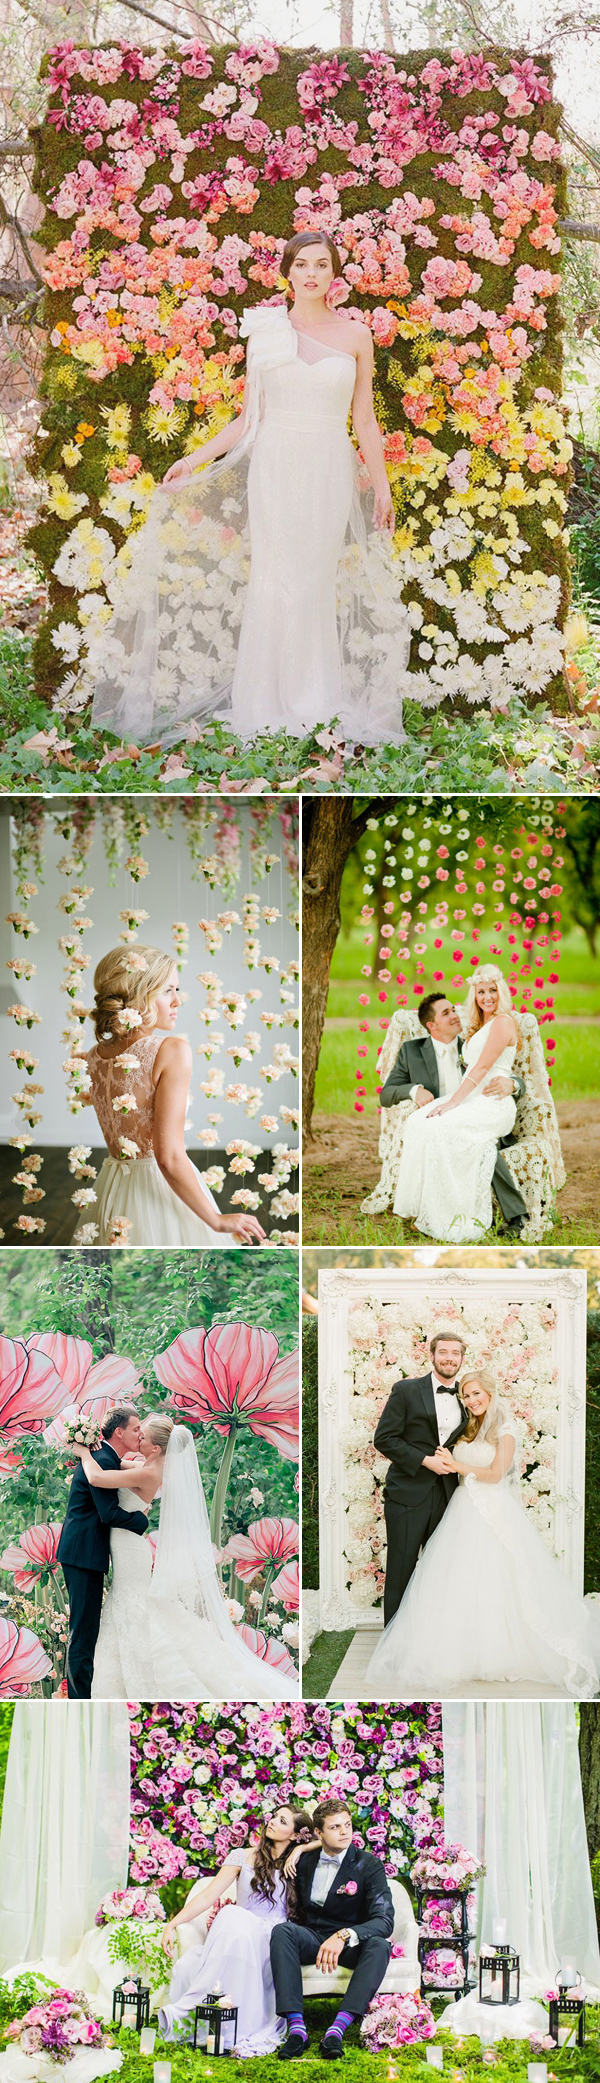 Floral Photobooth Backdrop